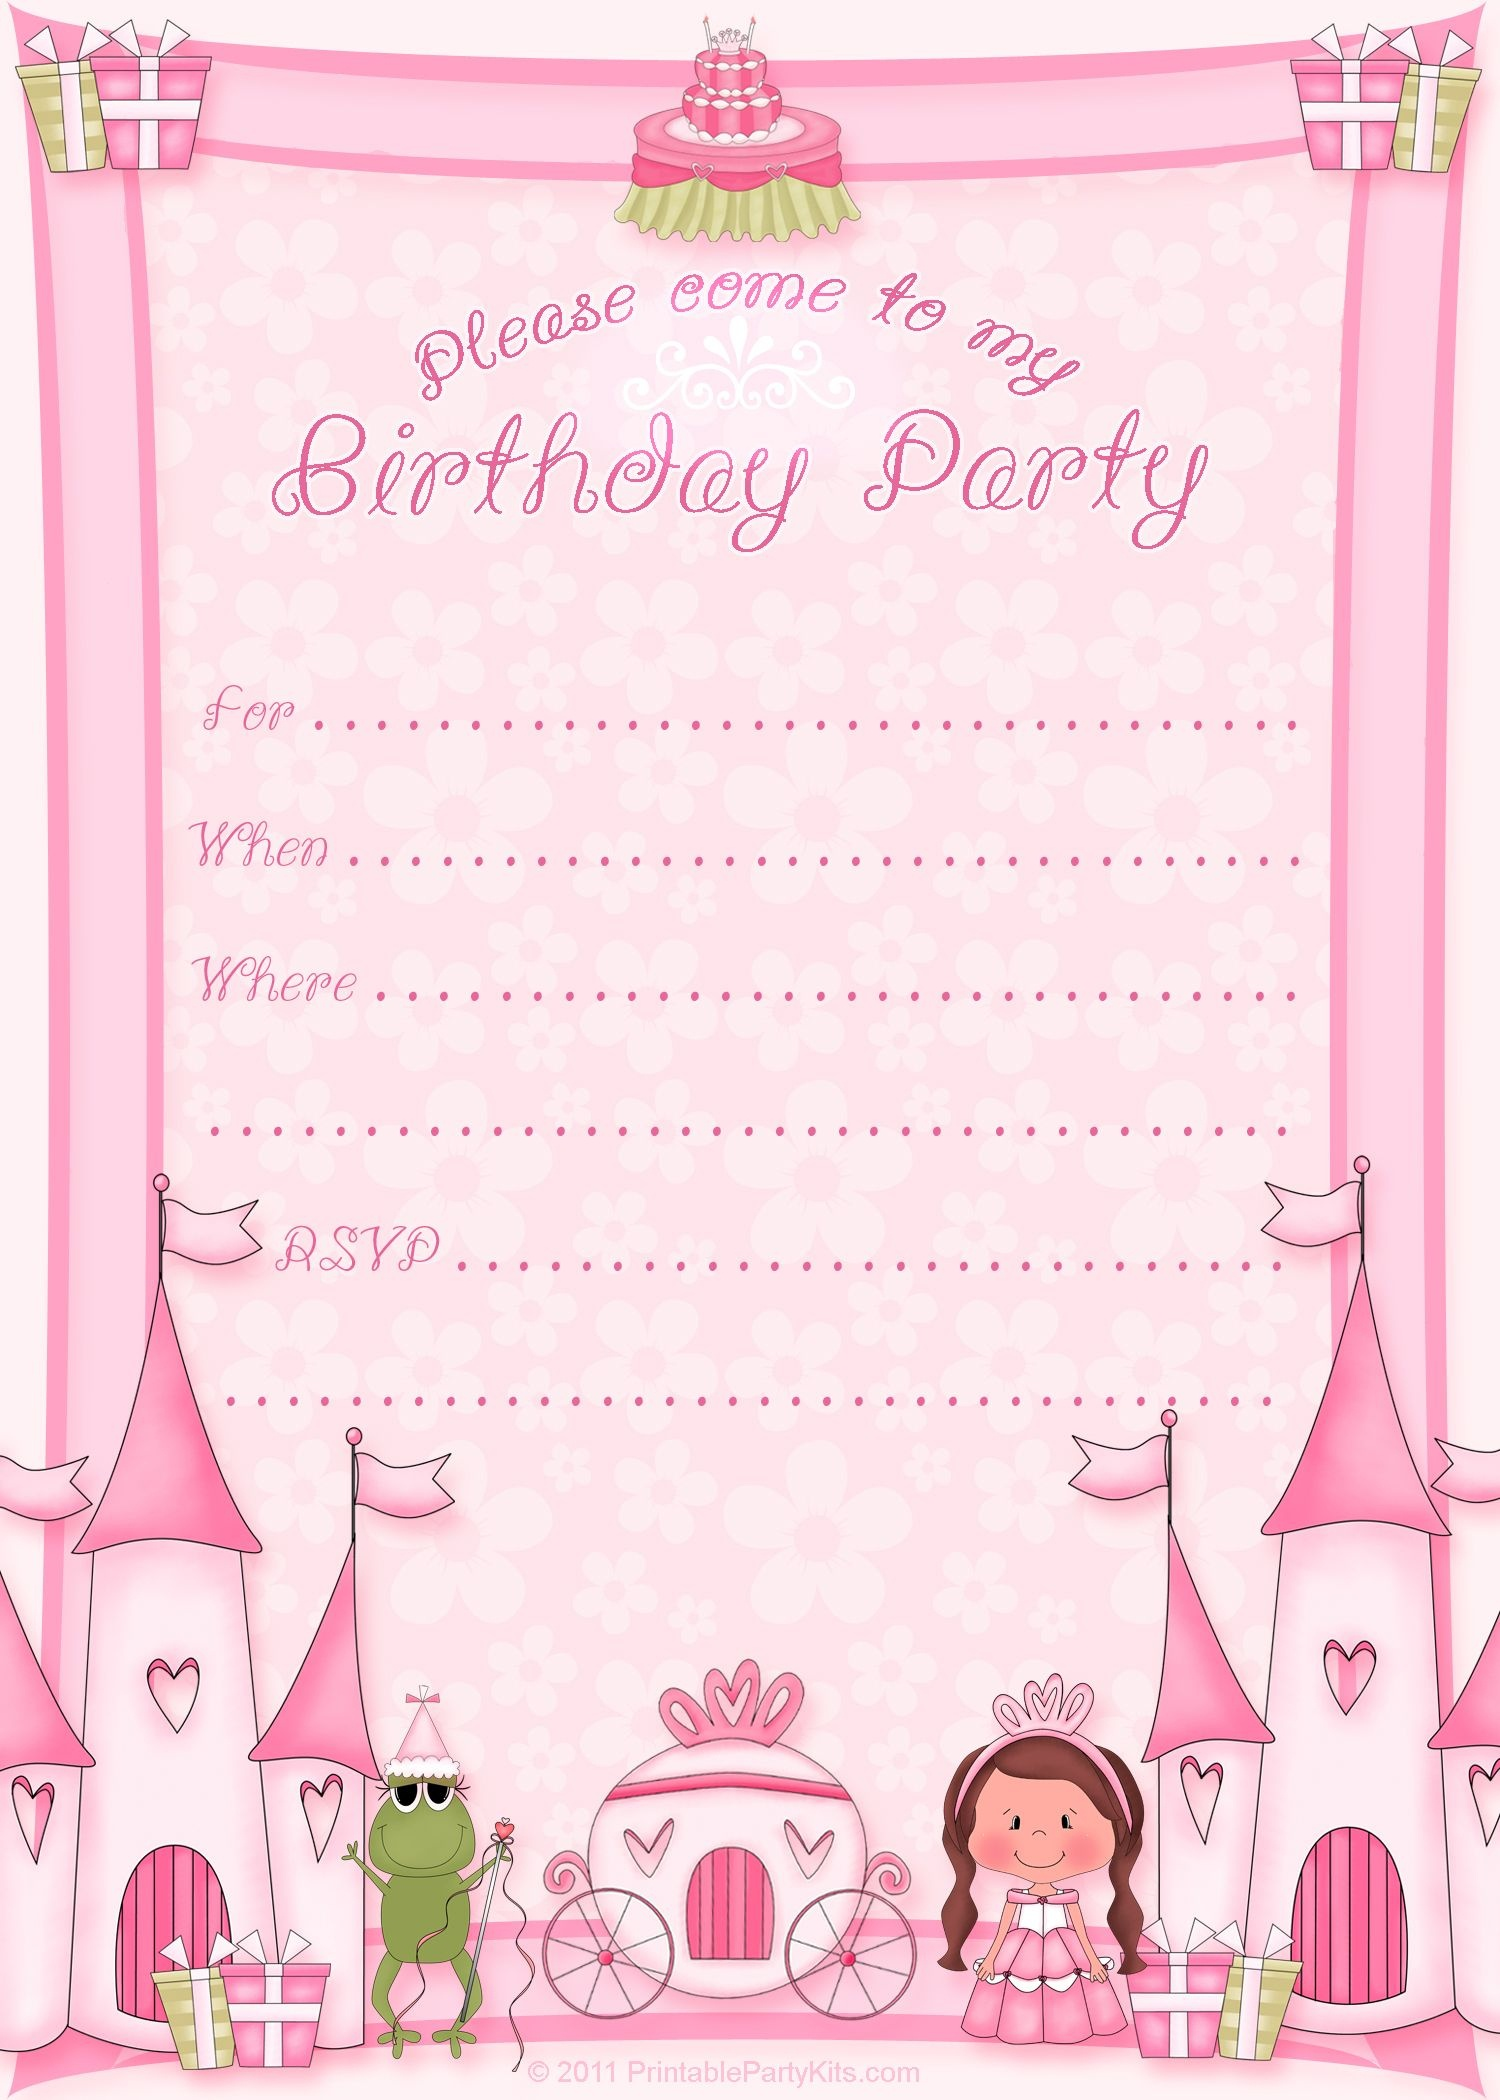 Free Printable Invitation. Pinned For Kidfolio, The Parenting Mobile - Free Printable Birthday Scrolls